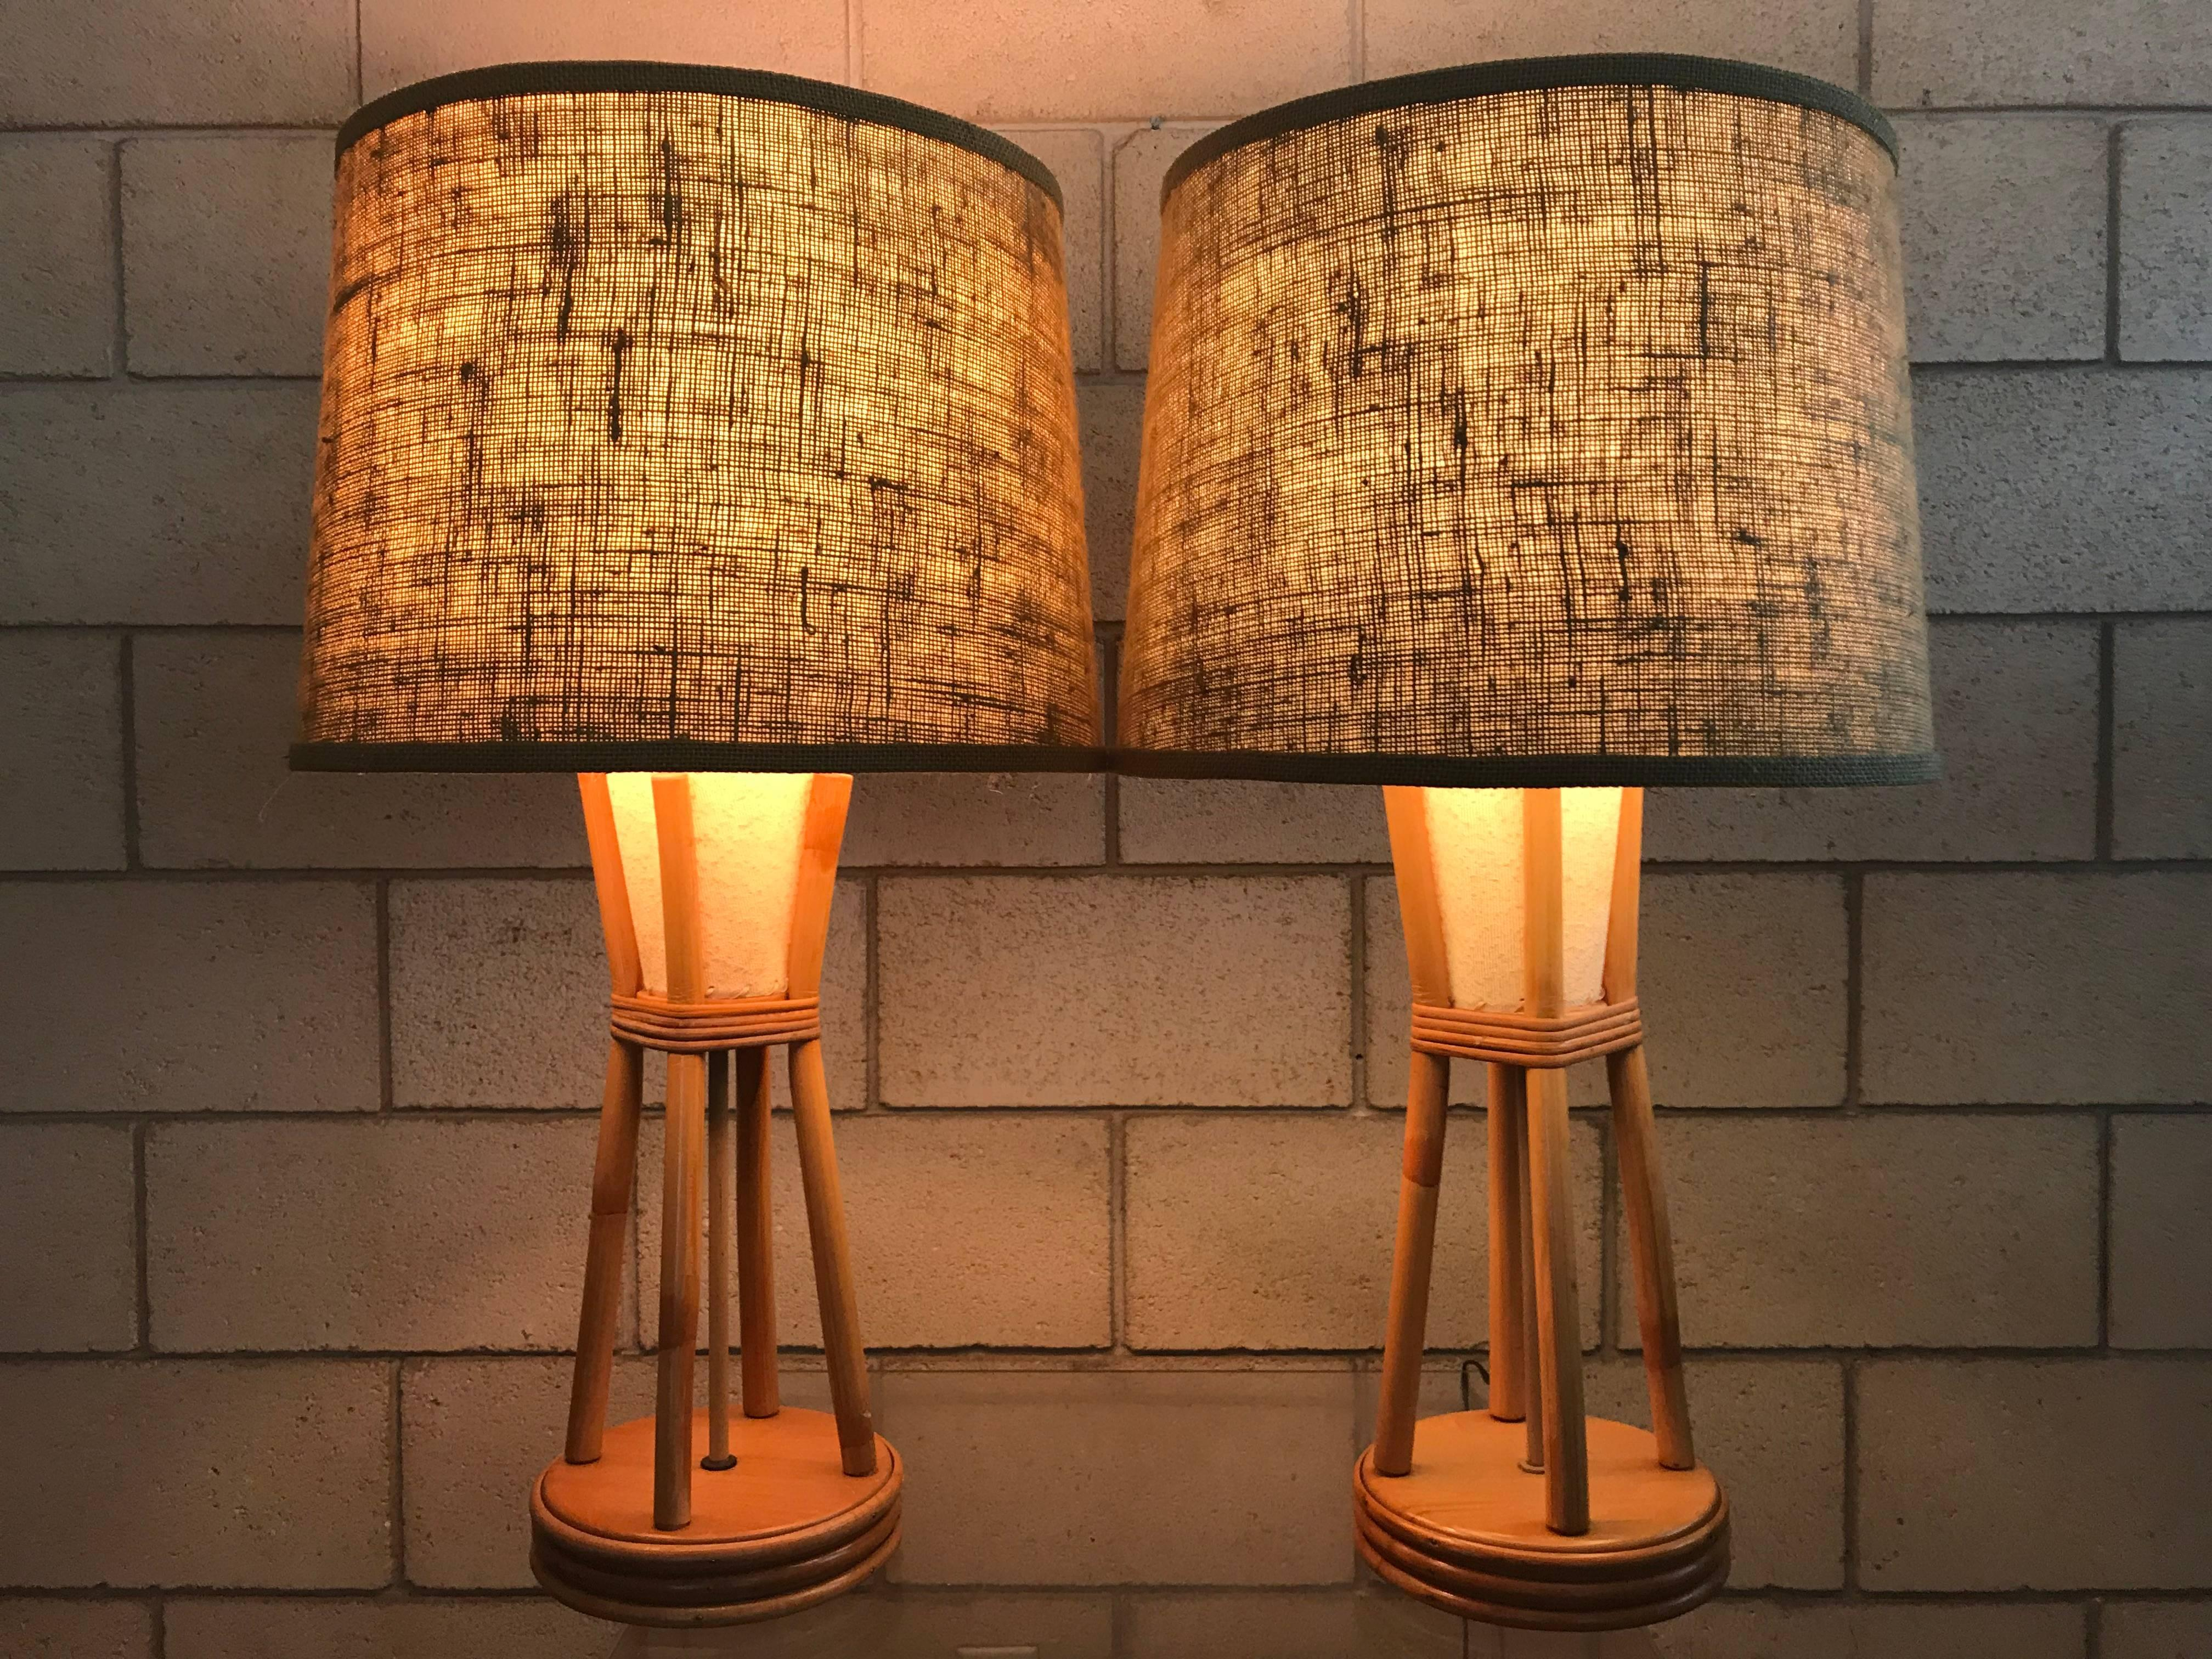 Wonderful Pair Of Paul Frankl Style Mid Century Modern Bamboo Tiki Lamps.  These Lamps